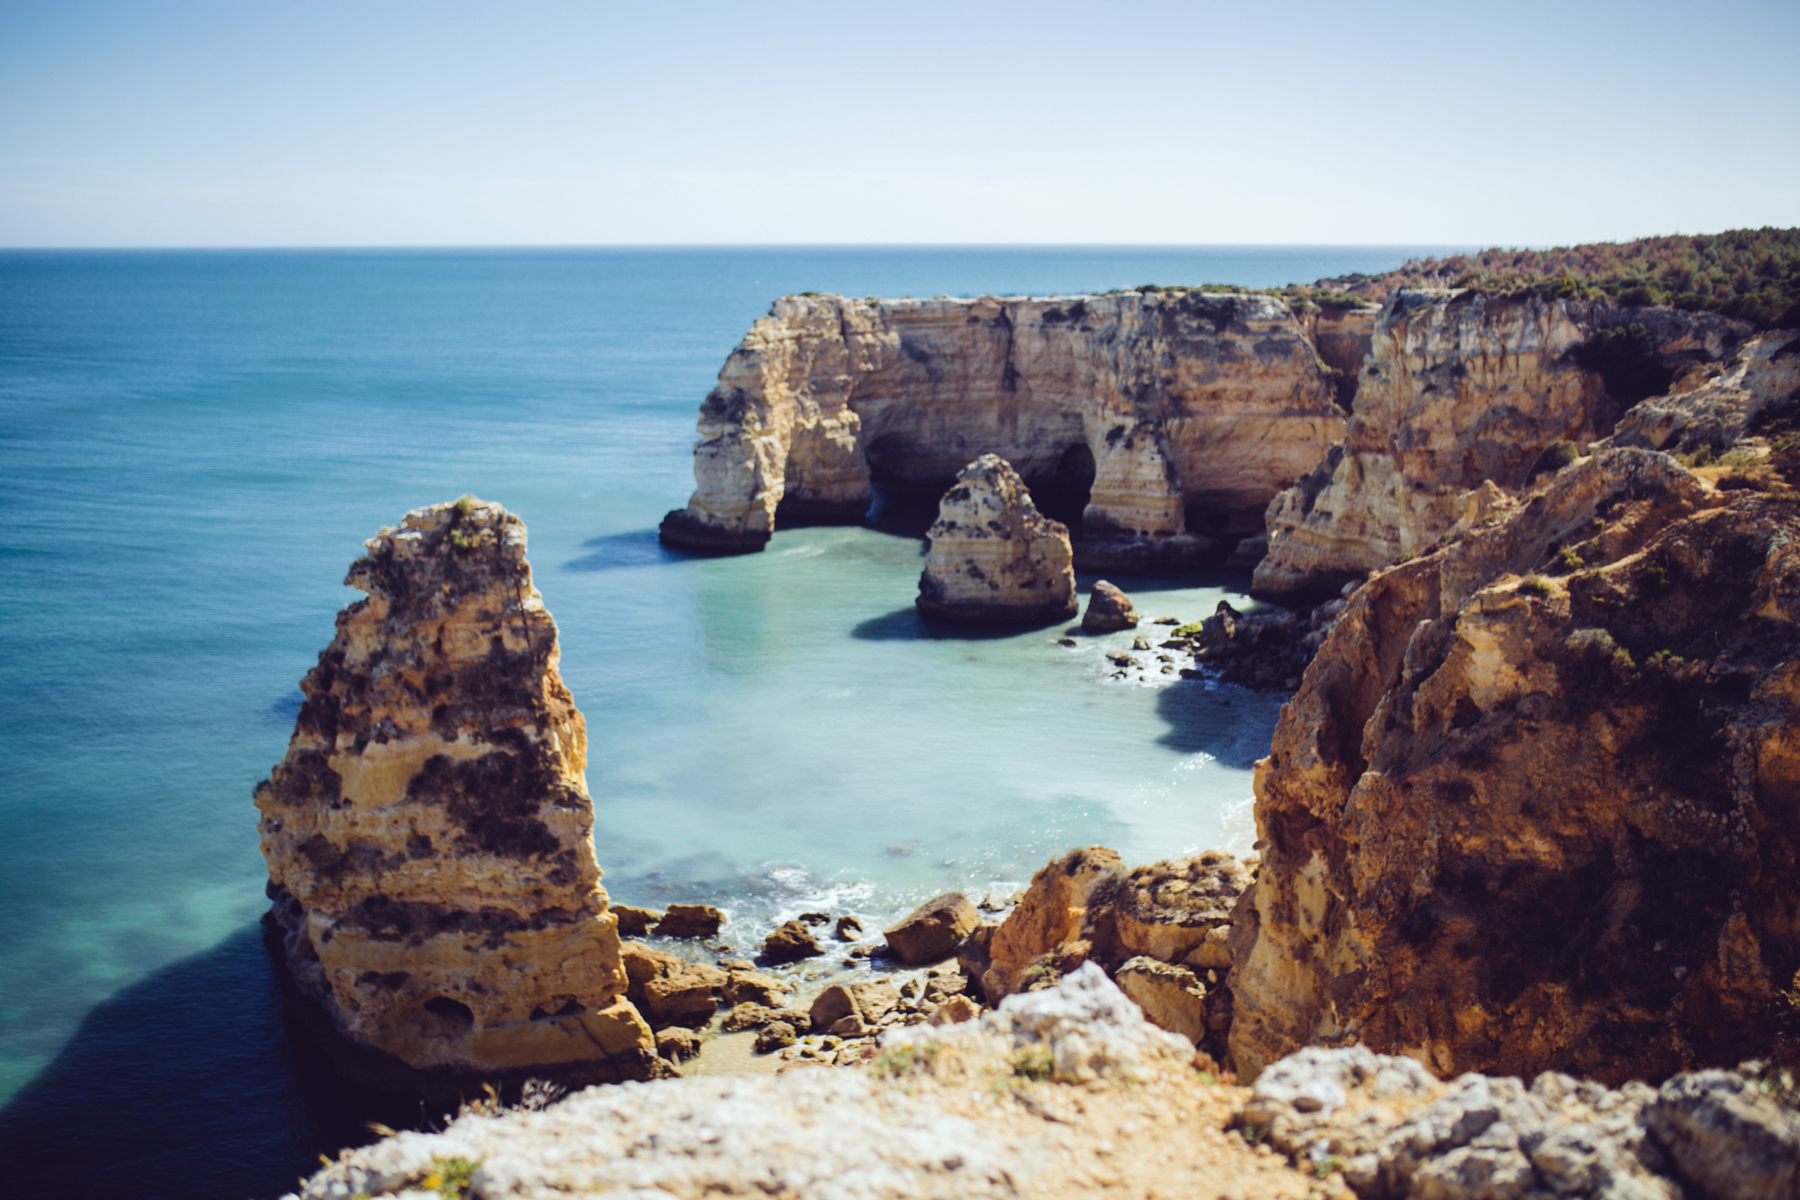 Praia da Marinha from the top - this picture only shows one tiny corner of it!